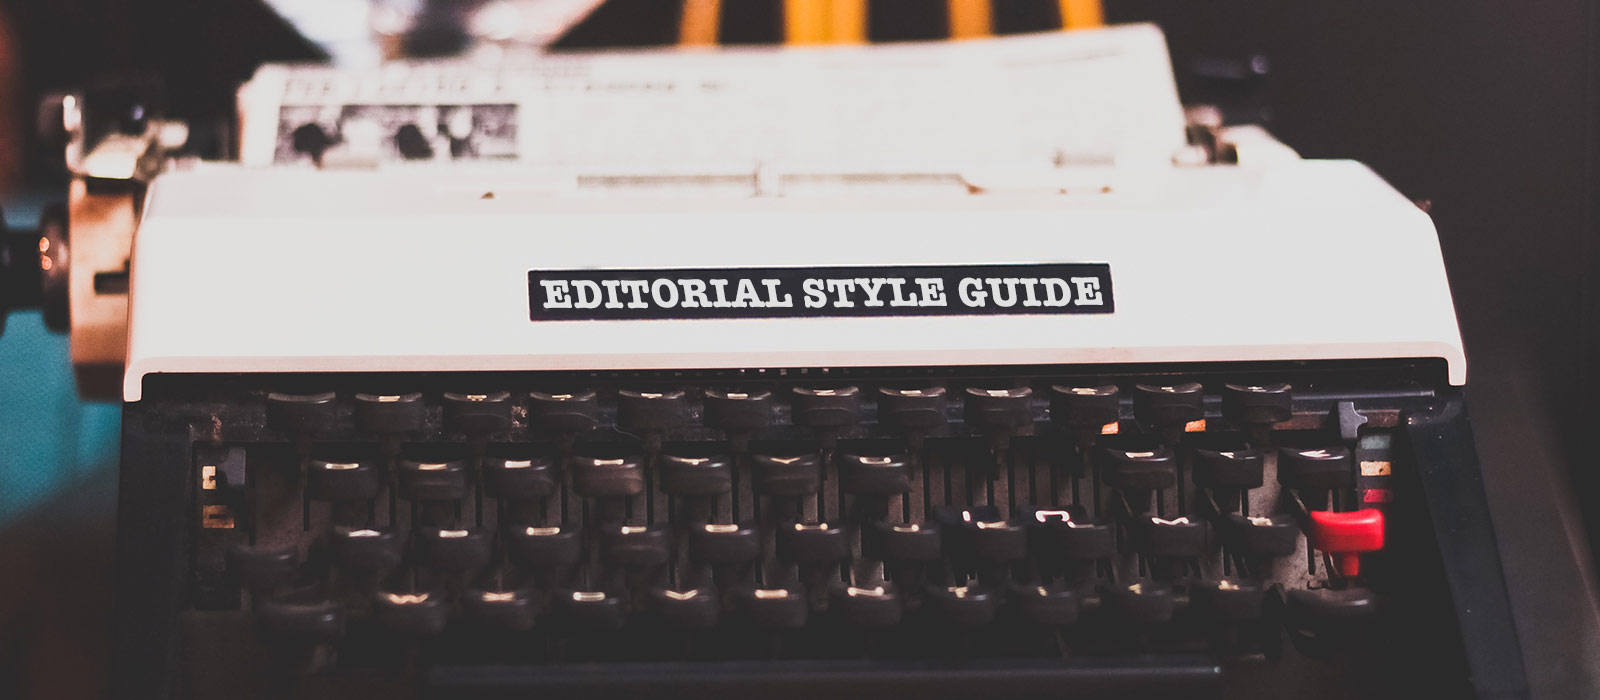 editorial-style-guide-hero